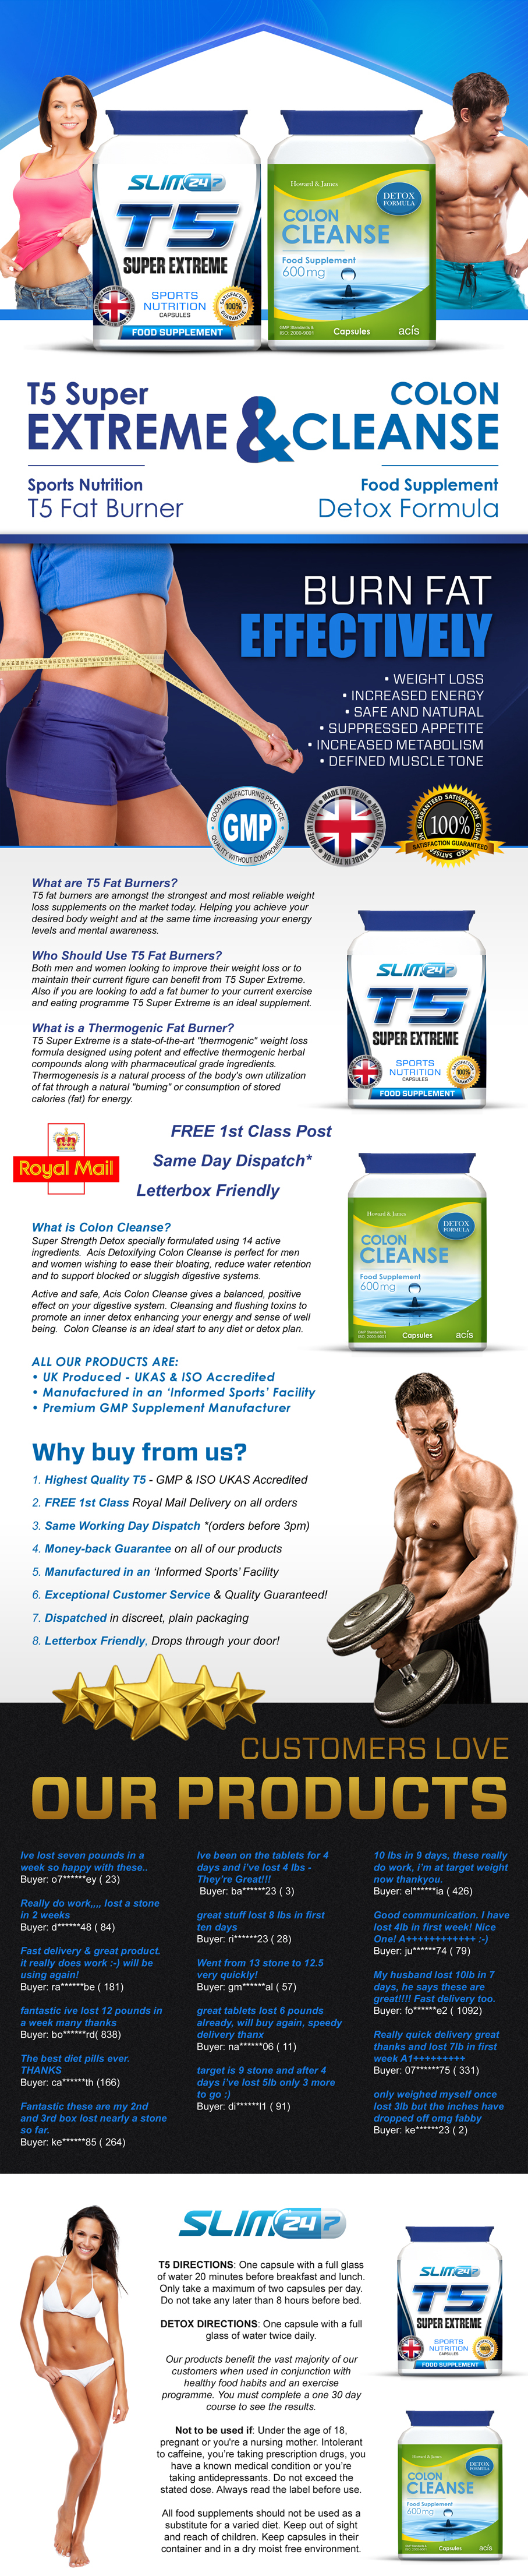 01_NEW_SLIM247_t5super_cleanse